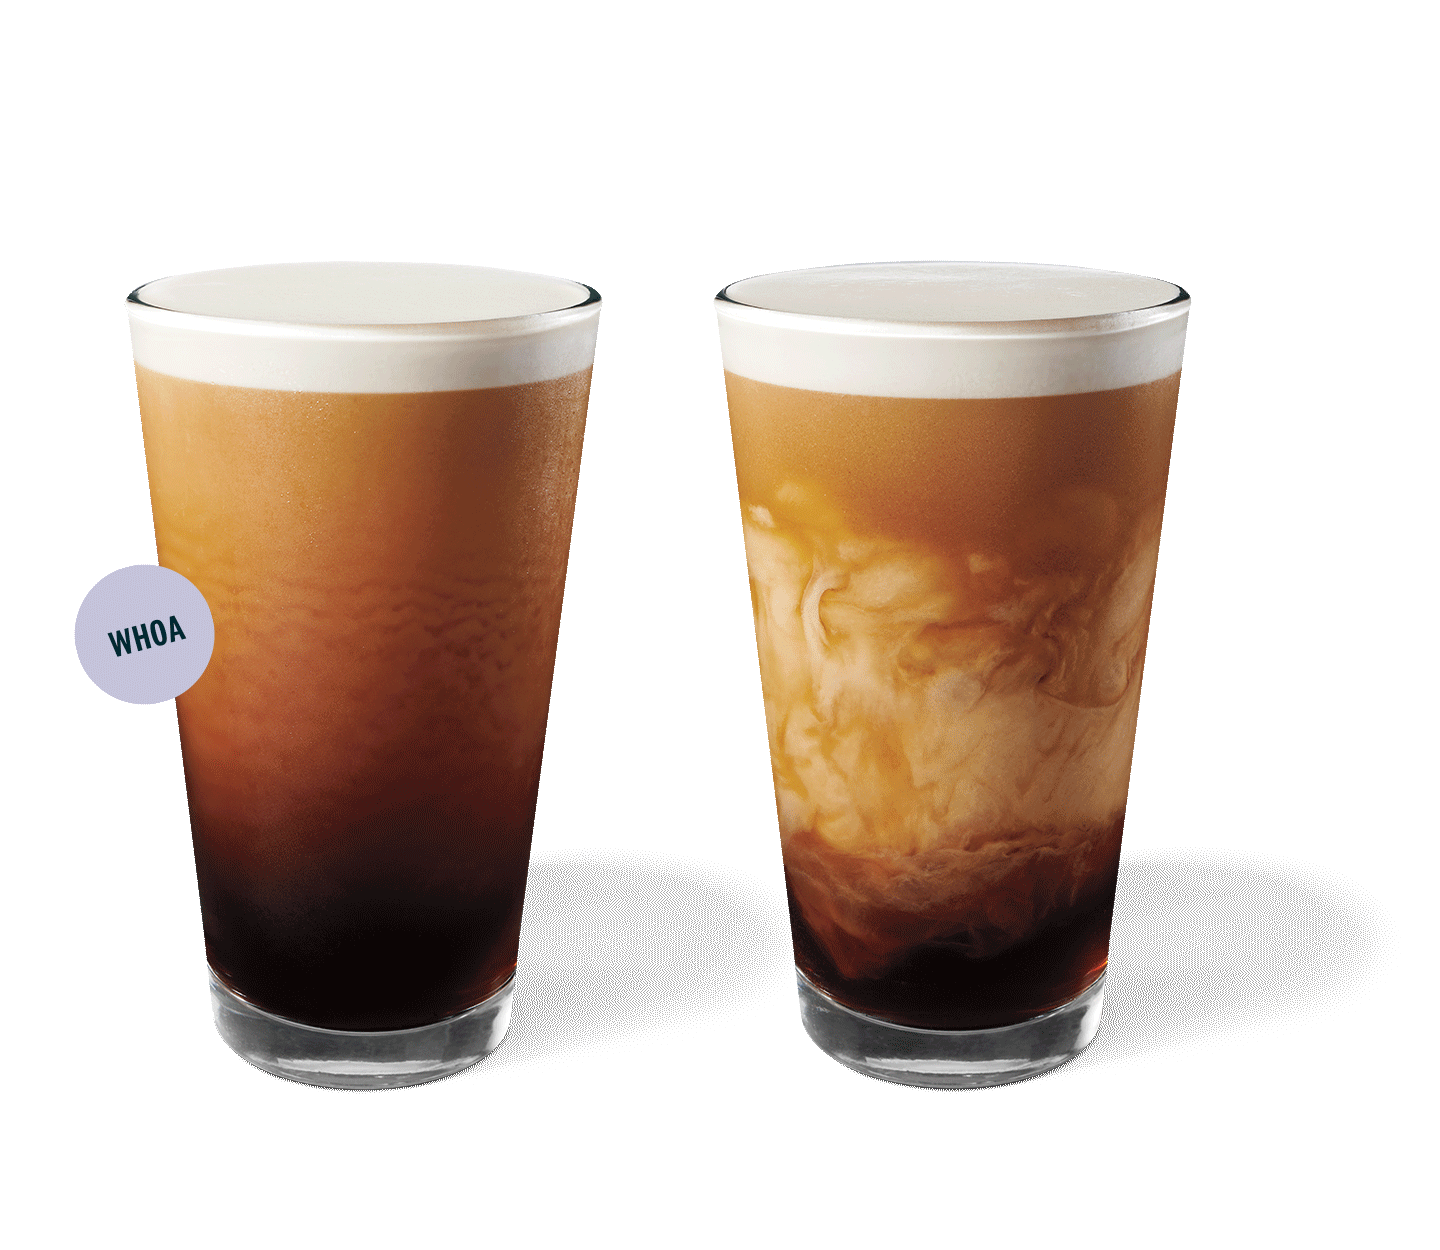 Two Nitro Cold Brew drinks in glassware.